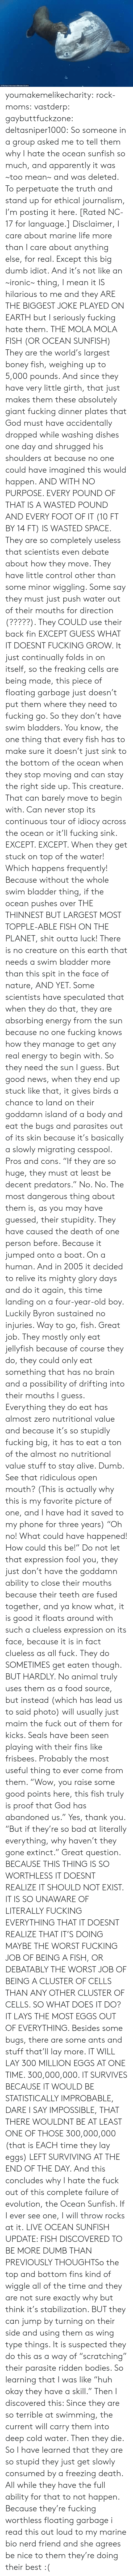 "Nutritional: ORihad Herrma M  S youmakemelikecharity:  rock-moms:  vastderp:  gaybuttfuckzone:  deltasniper1000:  So someone in a group asked me to tell them why I hate the ocean sunfish so much, and apparently it was ~too mean~ and was deleted. To perpetuate the truth and stand up for ethical journalism, I'm posting it here. [Rated NC-17 for language.]  Disclaimer, I care about marine life more than I care about anything else, for real. Except this big dumb idiot. And it's not like an ~ironic~ thing, I mean it IS hilarious to me and they ARE THE BIGGEST JOKE PLAYED ON EARTH but I seriously fucking hate them.  THE MOLA MOLA FISH (OR OCEAN SUNFISH)  They are the world's largest boney fish, weighing up to 5,000 pounds. And since they have very little girth, that just makes them these absolutely giant fucking dinner plates that God must have accidentally dropped while washing dishes one day and shrugged his shoulders at because no one could have imagined this would happen. AND WITH NO PURPOSE. EVERY POUND OF THAT IS A WASTED POUND AND EVERY FOOT OF IT (10 FT BY 14 FT) IS WASTED SPACE.  They are so completely useless that scientists even debate about how they move. They have little control other than some minor wiggling. Some say they must just push water out of their mouths for direction (?????). They COULD use their back fin EXCEPT GUESS WHAT IT DOESNT FUCKING GROW. It just continually folds in on itself, so the freaking cells are being made, this piece of floating garbage just doesn't put them where they need to fucking go.   So they don't have swim bladders. You know, the one thing that every fish has to make sure it doesn't just sink to the bottom of the ocean when they stop moving and can stay the right side up. This creature. That can barely move to begin with. Can never stop its continuous tour of idiocy across the ocean or it'll fucking sink. EXCEPT. EXCEPT. When they get stuck on top of the water! Which happens frequently! Because without the whole swim bladder thing, if the ocean pushes over THE THINNEST BUT LARGEST MOST TOPPLE-ABLE FISH ON THE PLANET, shit outta luck! There is no creature on this earth that needs a swim bladder more than this spit in the face of nature, AND YET. Some scientists have speculated that when they do that, they are absorbing energy from the sun because no one fucking knows how they manage to get any real energy to begin with. So they need the sun I guess. But good news, when they end up stuck like that, it gives birds a chance to land on their goddamn island of a body and eat the bugs and parasites out of its skin because it's basically a slowly migrating cesspool. Pros and cons.   ""If they are so huge, they must at least be decent predators."" No. No. The most dangerous thing about them is, as you may have guessed, their stupidity. They have caused the death of one person before. Because it jumped onto a boat. On a human. And in 2005 it decided to relive its mighty glory days and do it again, this time landing on a four-year-old boy. Luckily Byron sustained no injuries. Way to go, fish. Great job.  They mostly only eat jellyfish because of course they do, they could only eat something that has no brain and a possibility of drifting into their mouths I guess. Everything they do eat has almost zero nutritional value and because it's so stupidly fucking big, it has to eat a ton of the almost no nutritional value stuff to stay alive. Dumb. See that ridiculous open mouth? (This is actually why this is my favorite picture of one, and I have had it saved to my phone for three years) ""Oh no! What could have happened! How could this be!"" Do not let that expression fool you, they just don't have the goddamn ability to close their mouths because their teeth are fused together, and ya know what, it is good it floats around with such a clueless expression on its face, because it is in fact clueless as all fuck.  They do SOMETIMES get eaten though. BUT HARDLY. No animal truly uses them as a food source, but instead (which has lead us to said photo) will usually just maim the fuck out of them for kicks. Seals have been seen playing with their fins like frisbees. Probably the most useful thing to ever come from them.   ""Wow, you raise some good points here, this fish truly is proof that God has abandoned us."" Yes, thank you. ""But if they're so bad at literally everything, why haven't they gone extinct."" Great question.   BECAUSE THIS THING IS SO WORTHLESS IT DOESNT REALIZE IT SHOULD NOT EXIST. IT IS SO UNAWARE OF LITERALLY FUCKING EVERYTHING THAT IT DOESNT REALIZE THAT IT'S DOING MAYBE THE WORST FUCKING JOB OF BEING A FISH, OR DEBATABLY THE WORST JOB OF BEING A CLUSTER OF CELLS THAN ANY OTHER CLUSTER OF CELLS. SO WHAT DOES IT DO? IT LAYS THE MOST EGGS OUT OF EVERYTHING. Besides some bugs, there are some ants and stuff that'll lay more. IT WILL LAY 300 MILLION EGGS AT ONE TIME. 300,000,000. IT SURVIVES BECAUSE IT WOULD BE STATISTICALLY IMPROBABLE, DARE I SAY IMPOSSIBLE, THAT THERE WOULDNT BE AT LEAST ONE OF THOSE 300,000,000 (that is EACH time they lay eggs) LEFT SURVIVING AT THE END OF THE DAY.   And this concludes why I hate the fuck out of this complete failure of evolution, the Ocean Sunfish. If I ever see one, I will throw rocks at it.   LIVE OCEAN SUNFISH UPDATE: FISH DISCOVERED TO BE MORE DUMB THAN PREVIOUSLY THOUGHTSo  the top and bottom fins kind of wiggle all of the time and they are not  sure exactly why but think it's stabilization. BUT they can jump by  turning on their side and using them as  wing type things. It is suspected they do this as a way of ""scratching""  their parasite ridden bodies. So learning that I was like ""huh okay they  have a skill."" Then I discovered this: Since they  are so terrible at swimming, the current will carry them into deep cold  water. Then they die. So I have learned that they are so stupid they  just get slowly consumed by a freezing death. All while they have the  full ability for that to not happen. Because they're fucking worthless  floating garbage    i read this out loud to my marine bio nerd friend and she agrees   be nice to them they're doing their best :("